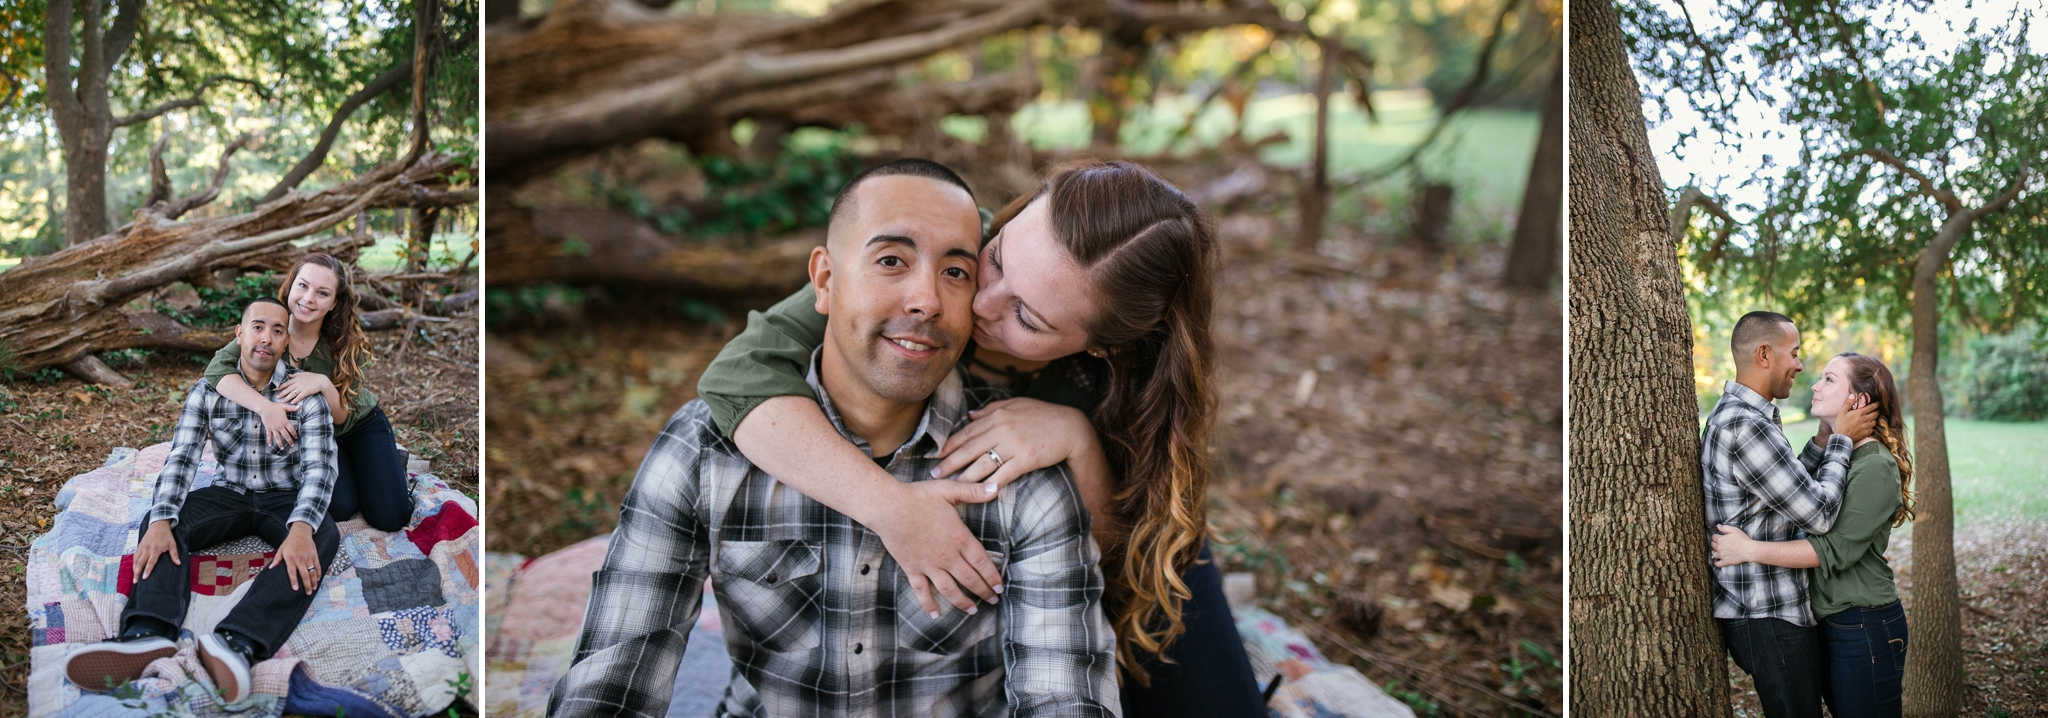 Engagement Photographer at the Weymouth Center in Southern Pines, North Carolina